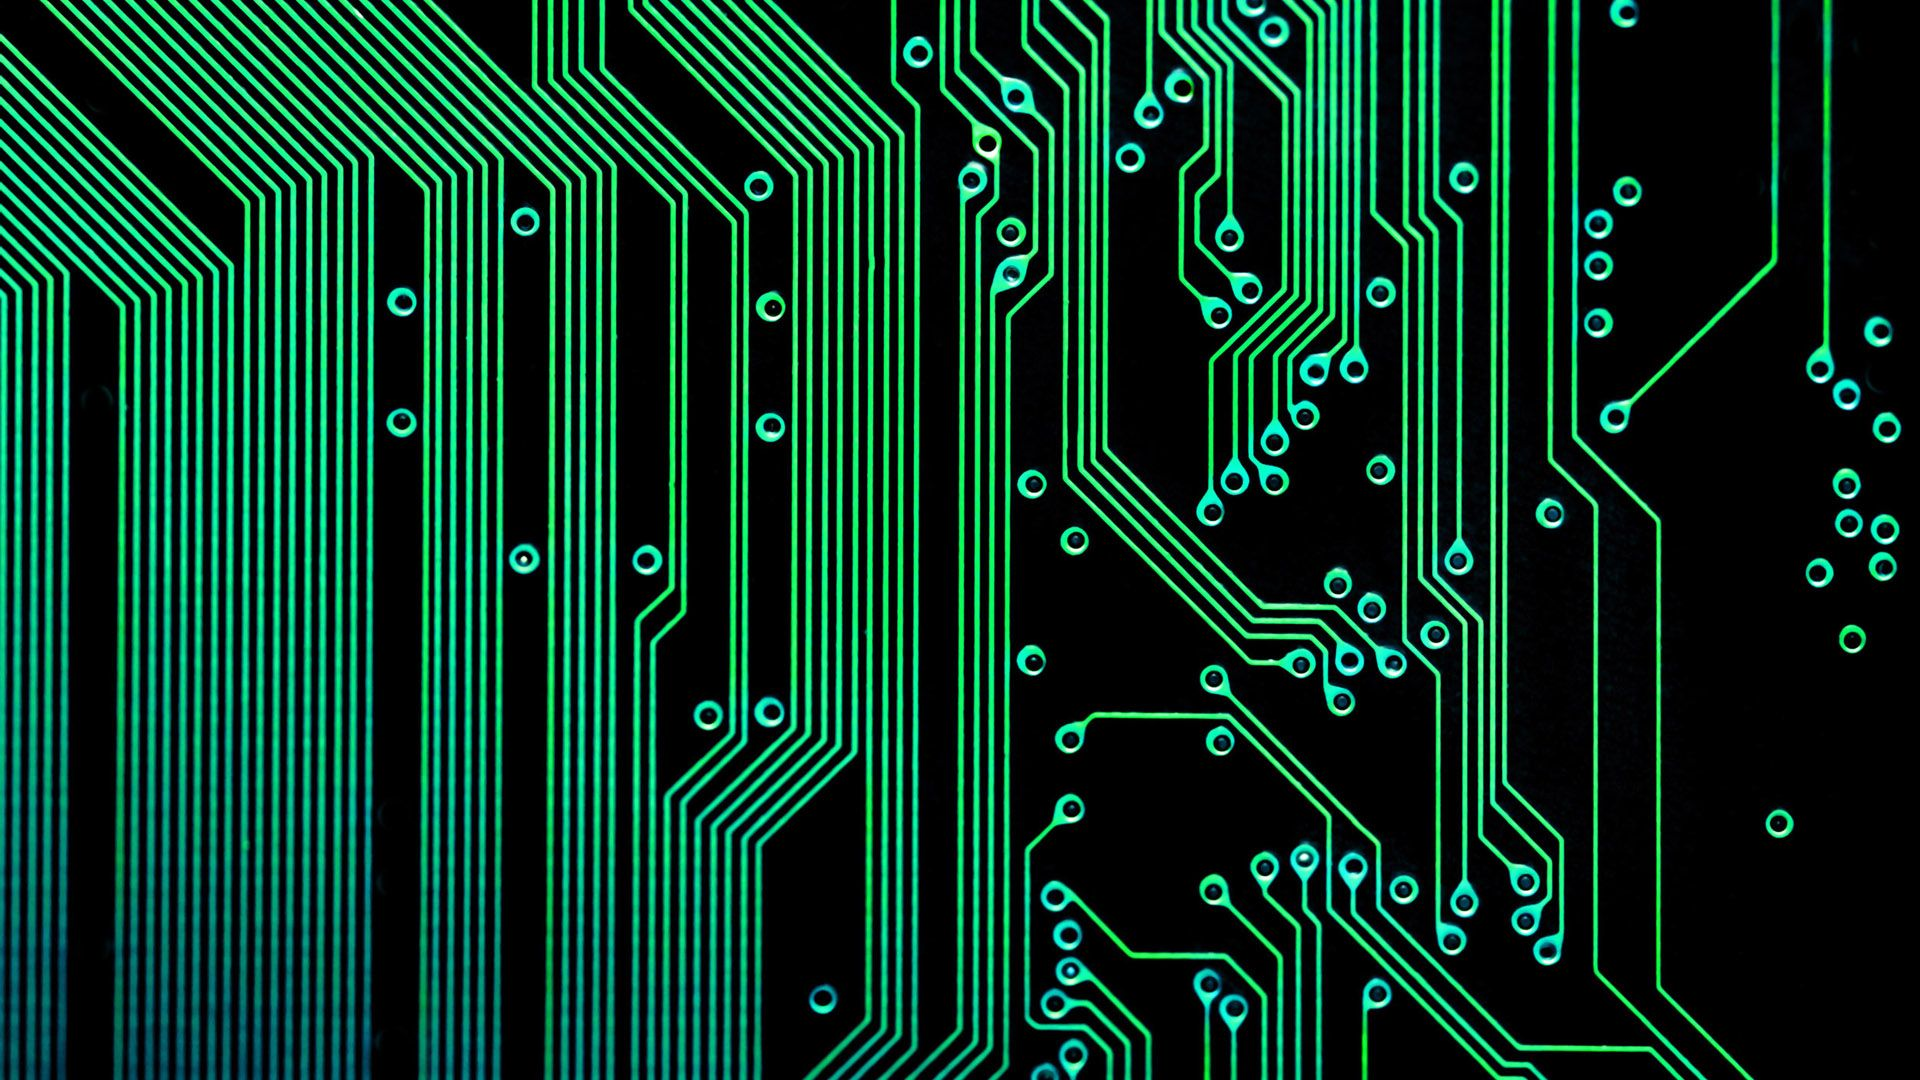 Pcb Wallpaper Google Search Doodle4google Ref Pinterest Modern Electronic Circuit Design Printed Board Science And Technology